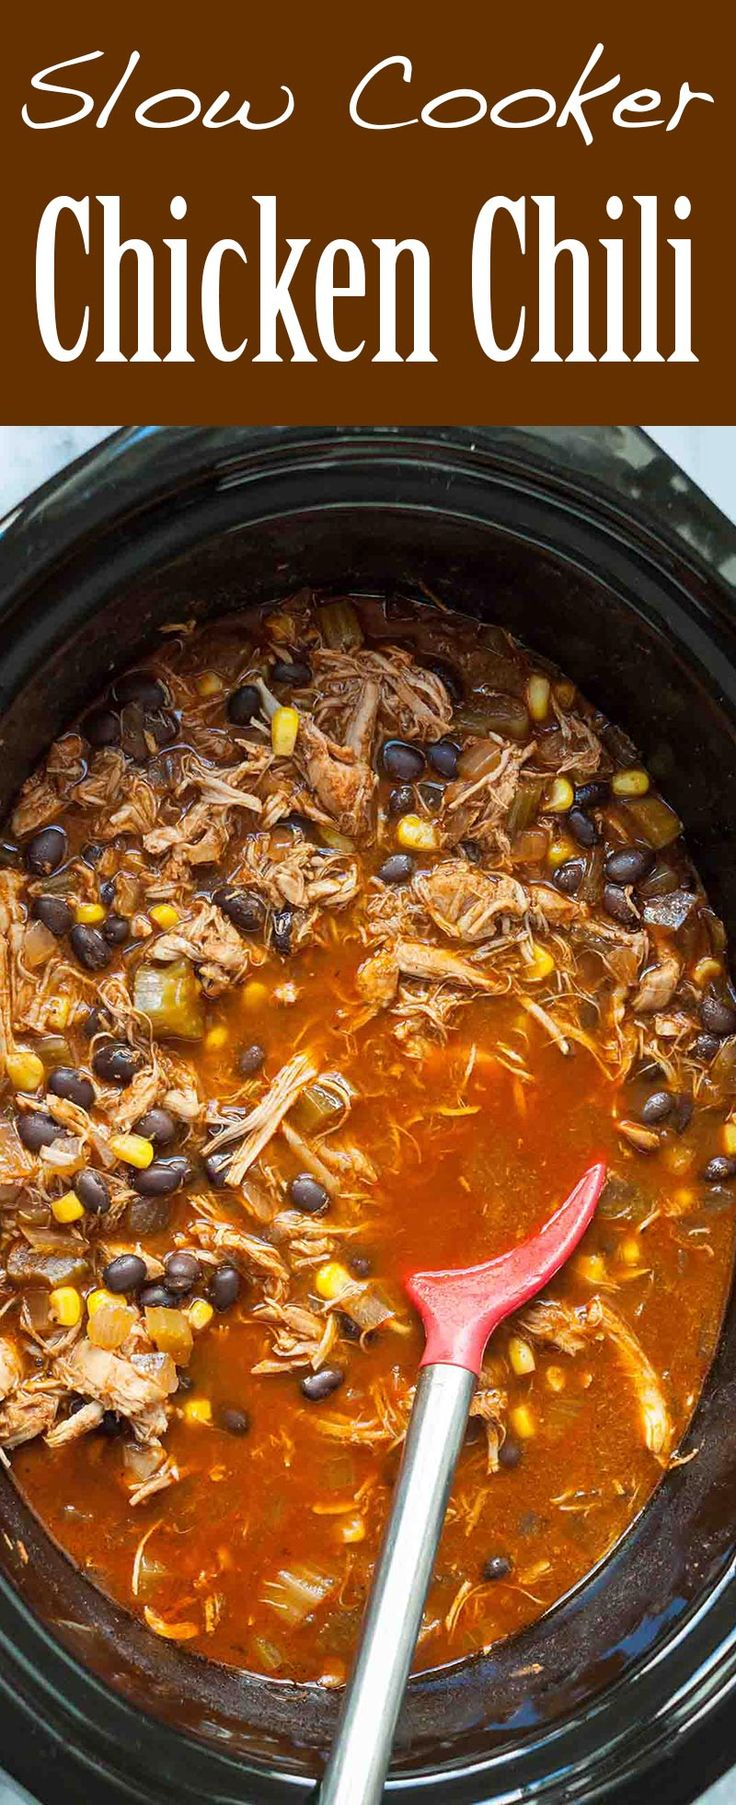 Slow Cooker Shredded Chicken Chili is perfect for busy weeks! Made with chicken thighs or breasts, onions, celery, black beans, frozen corn, chicken broth, tomato puree, and spices. So EASY!